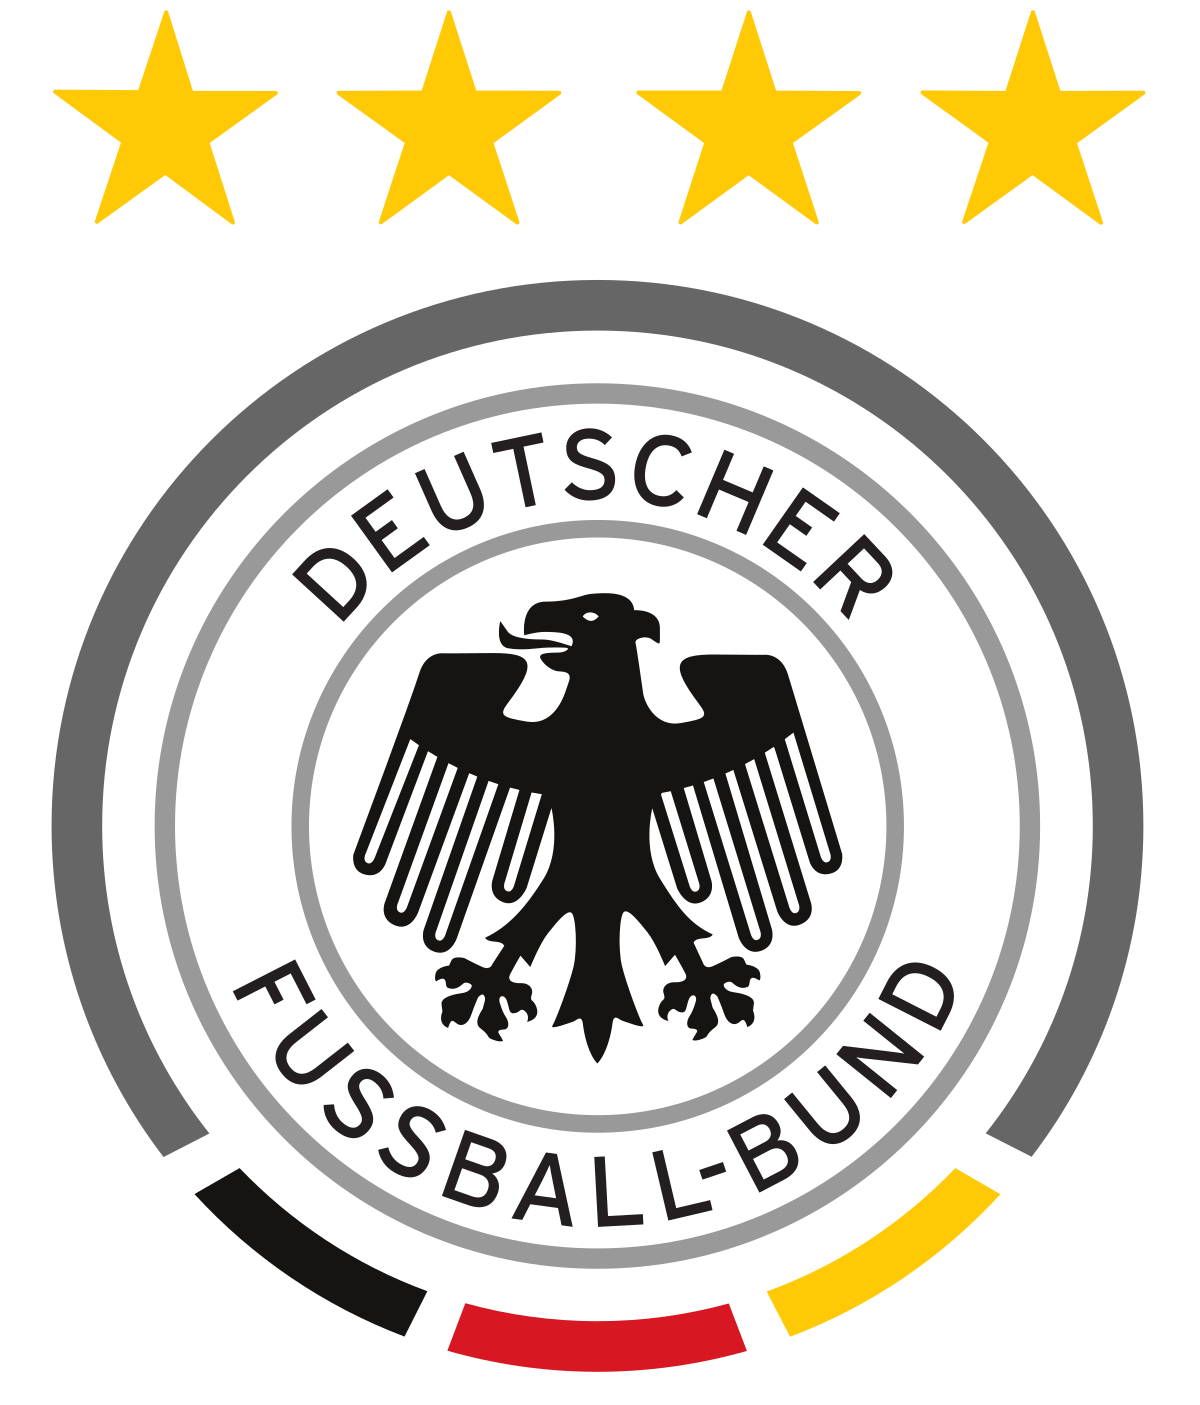 German clipart eagle german. Germany national football team